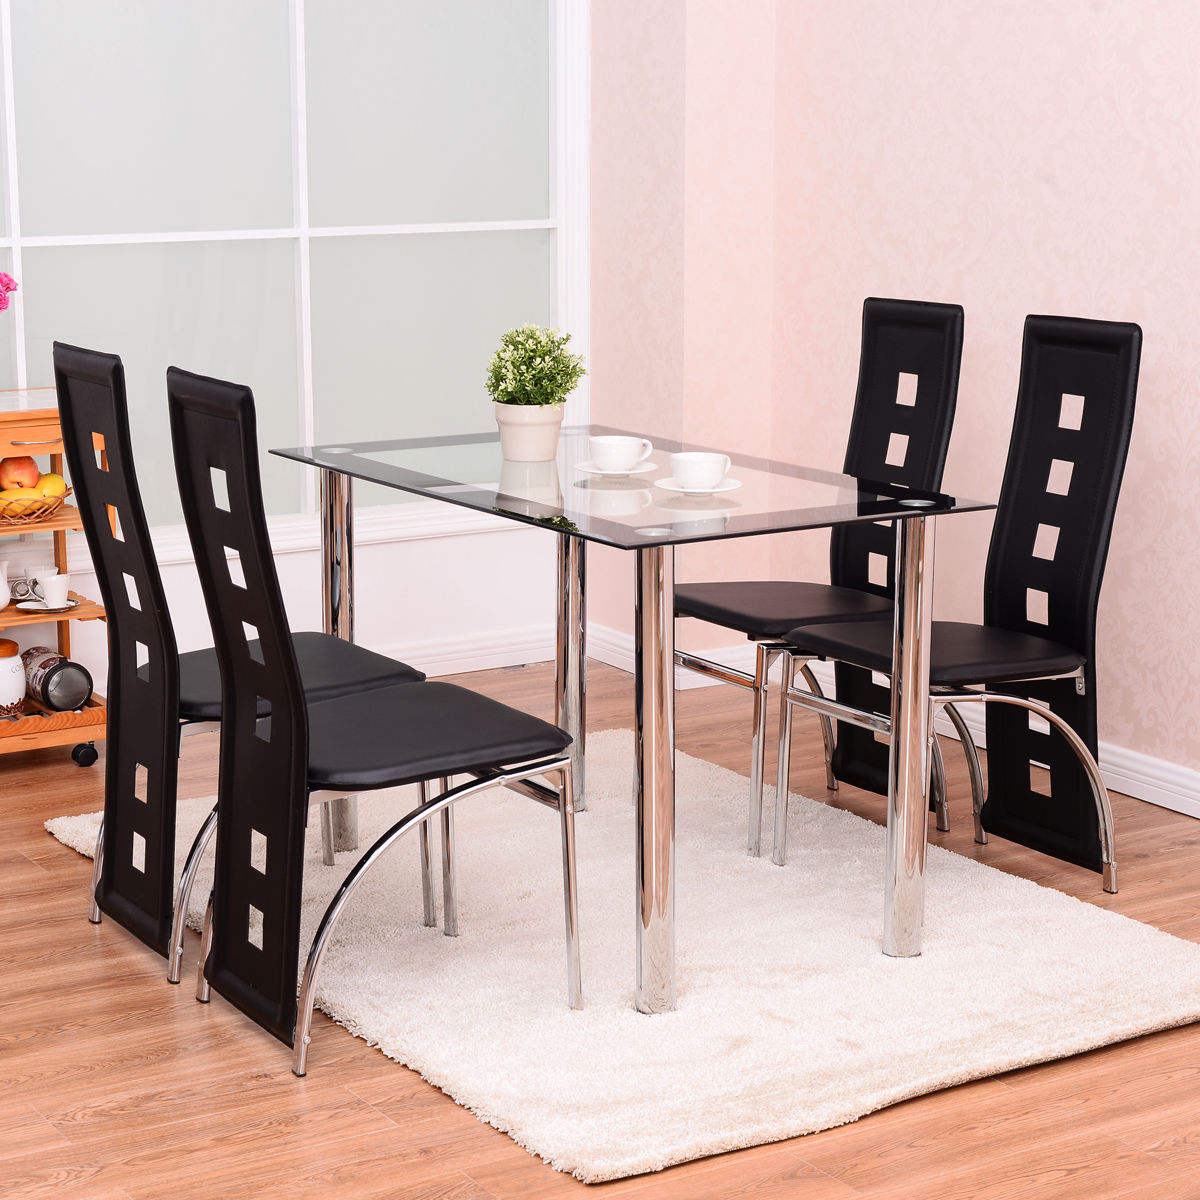 Captivating Costway 5 Piece Dining Set Glass Table And 4 Chairs Home Kitchen Breakfast  Furniture New